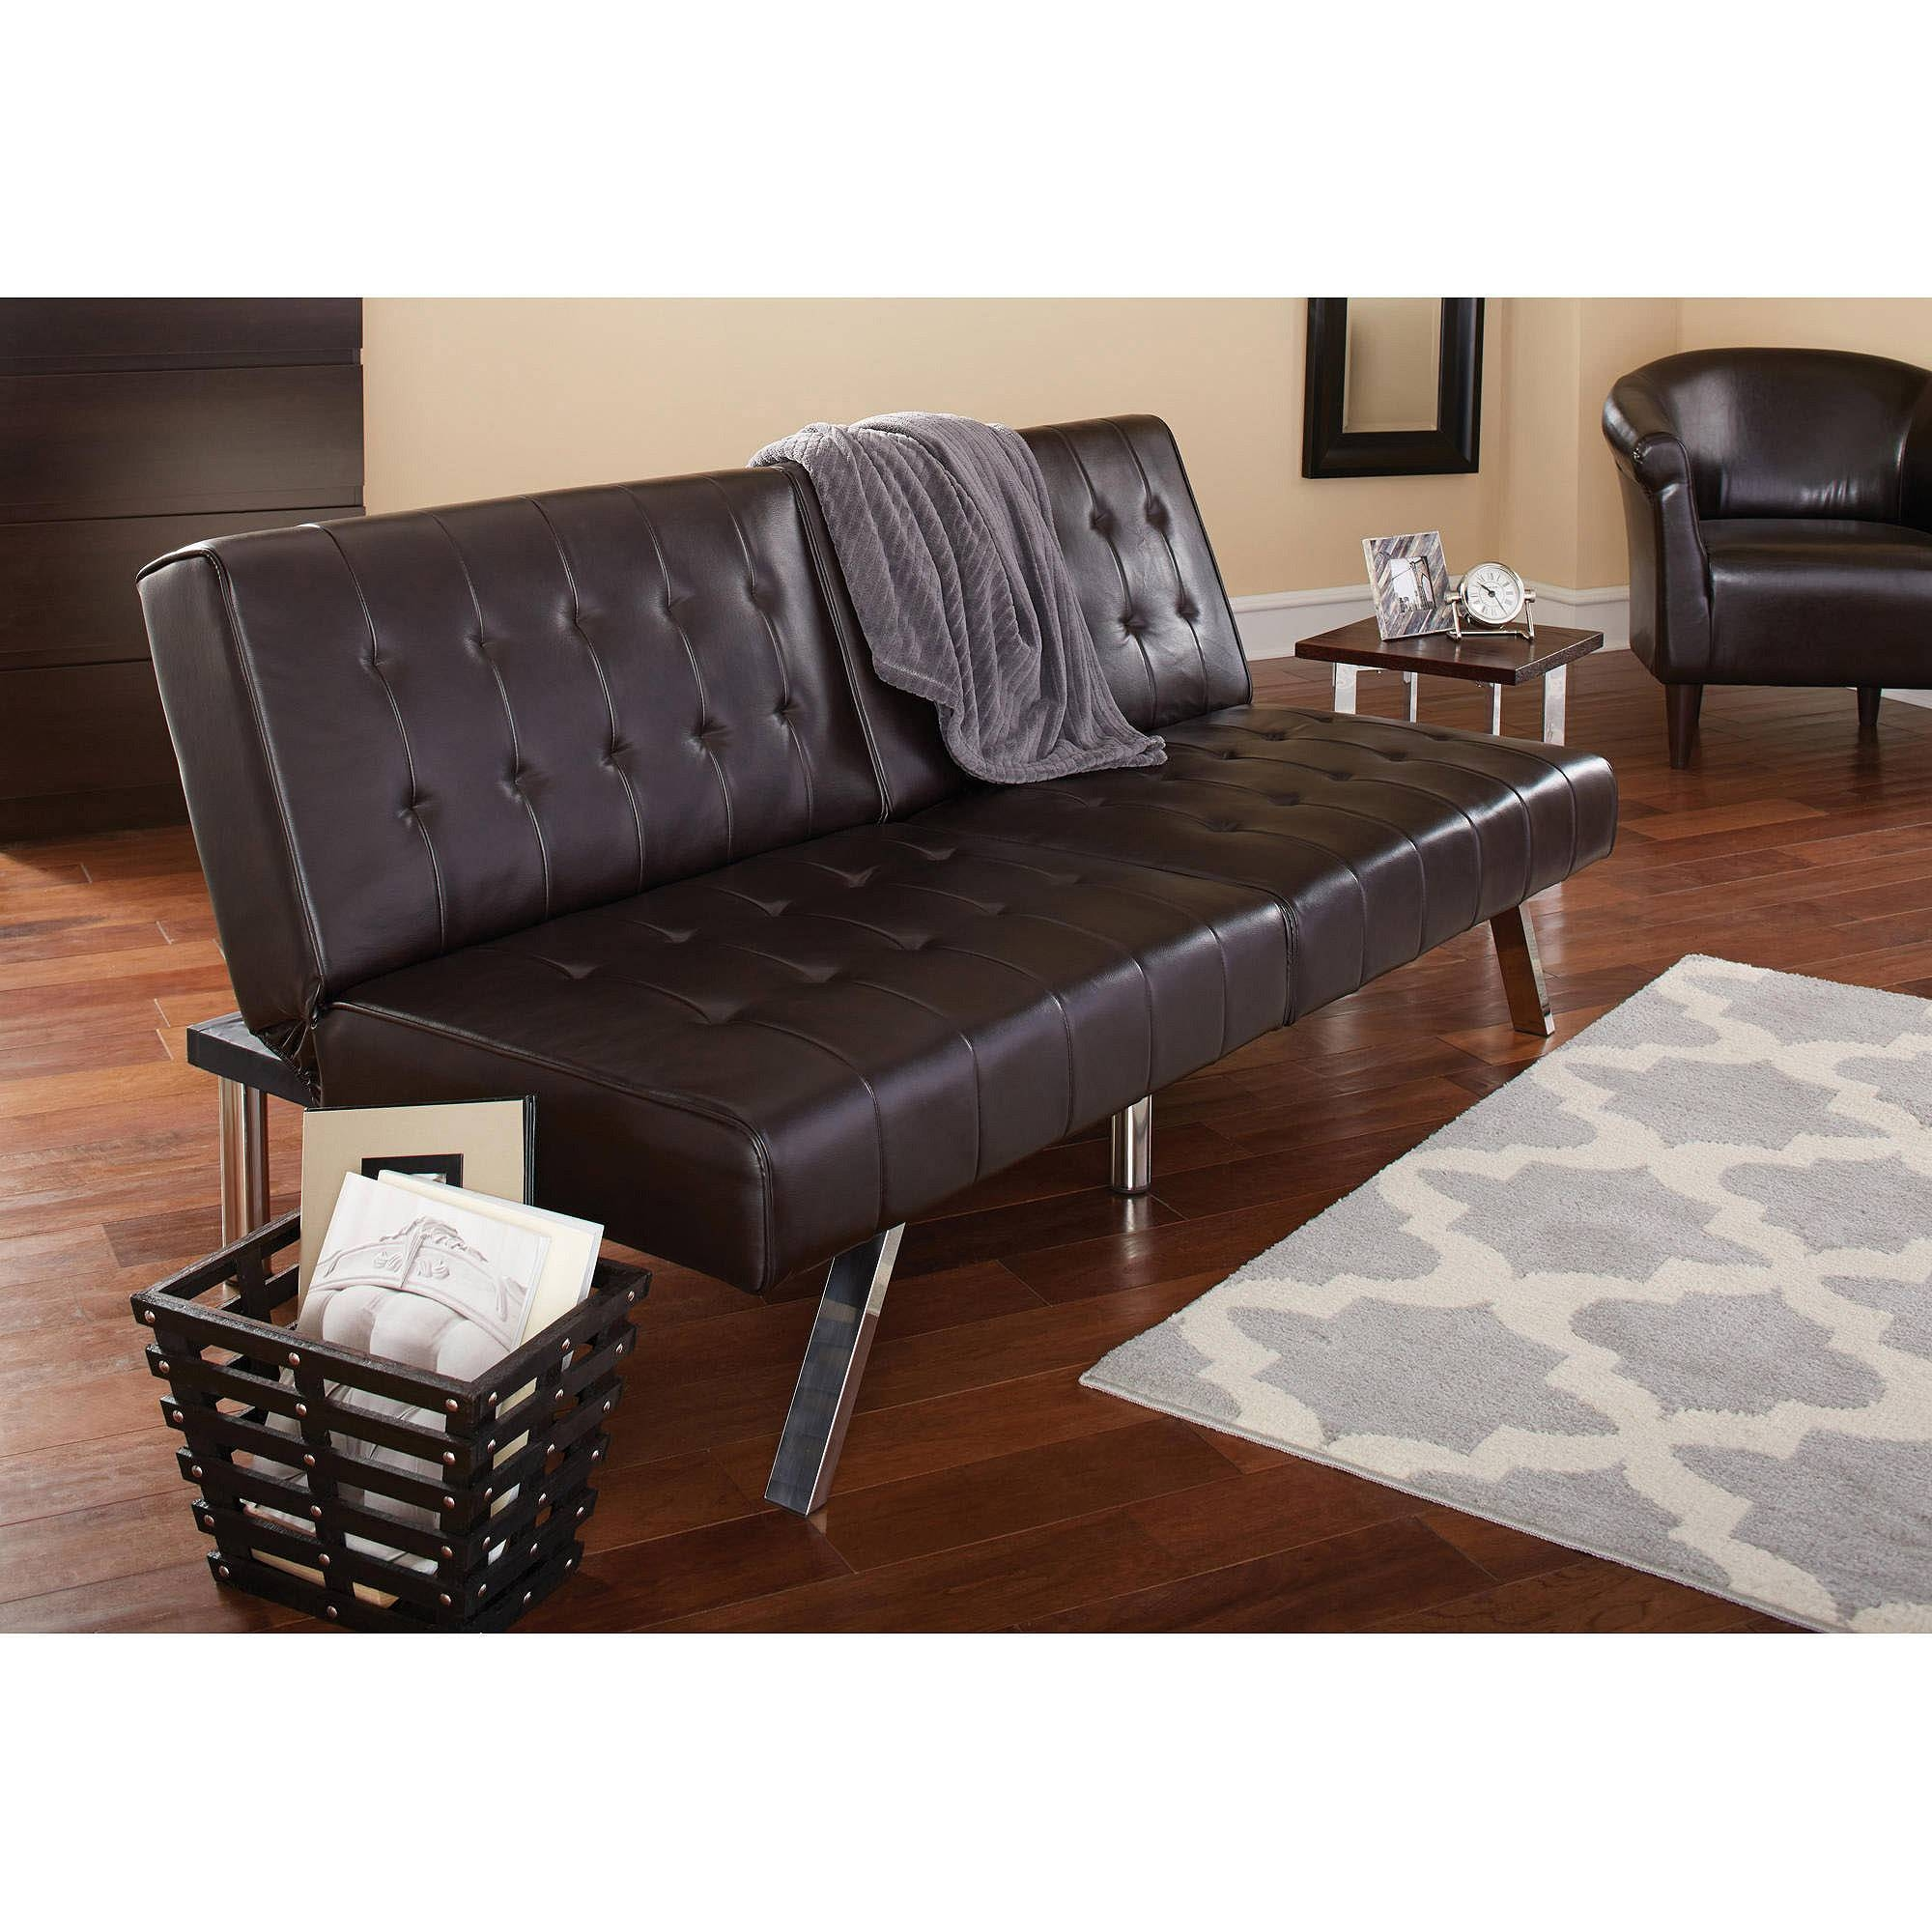 Twin Sofa Sleepers throughout Faux Leather Sleeper Sofas (Image 15 of 15)